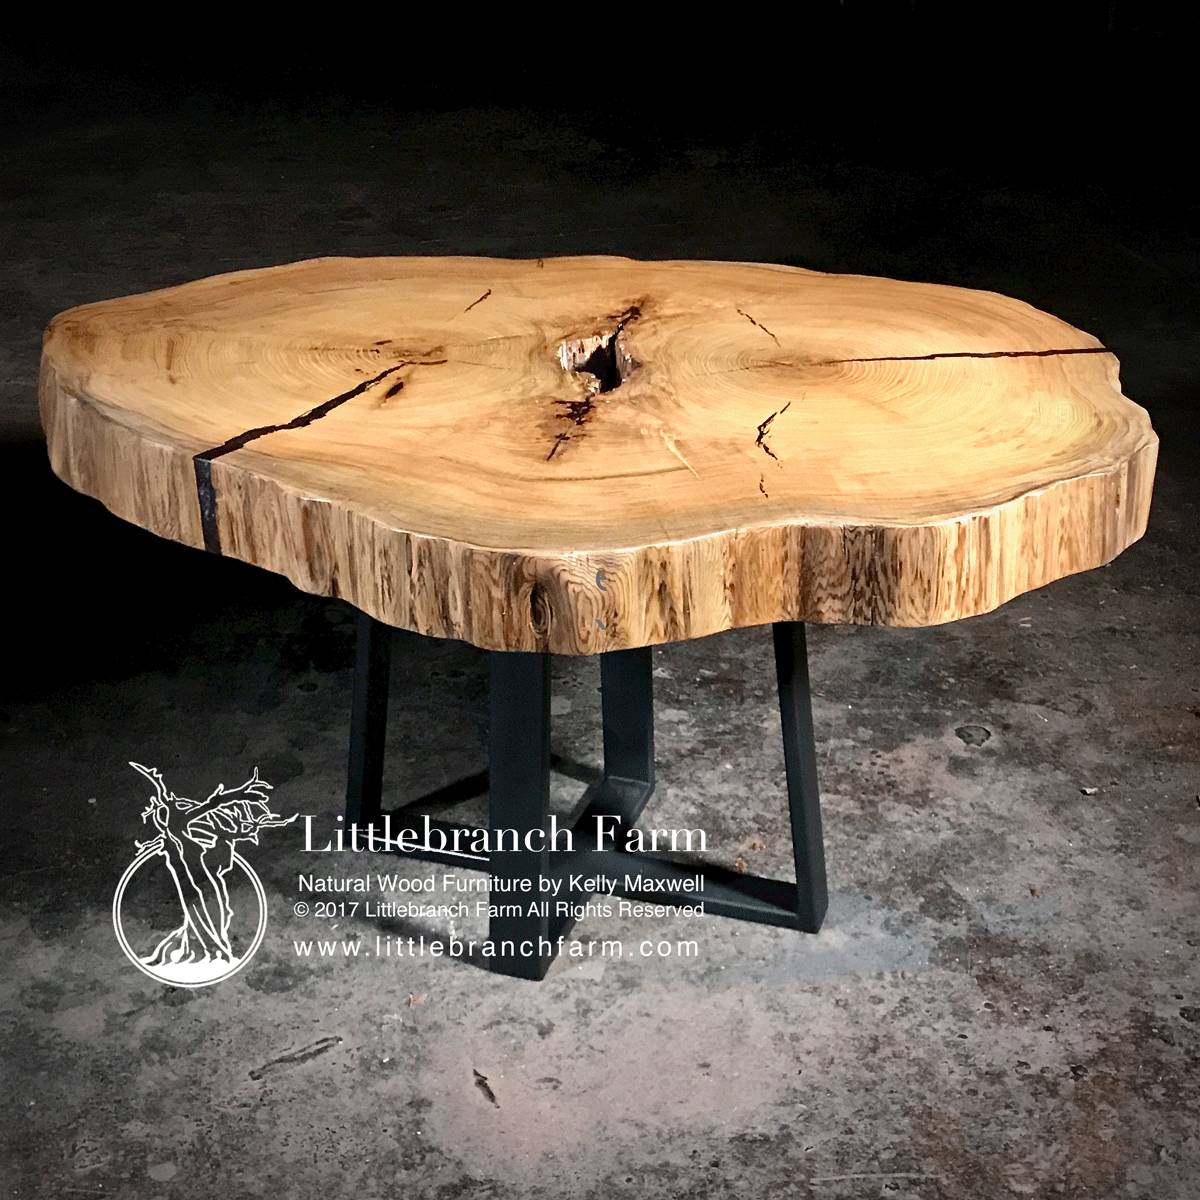 wood slab dining tables the ins and outs littlebranch farm natural table double heart cyrpress accent live edge pier one furniture small garden black patio chairs center design